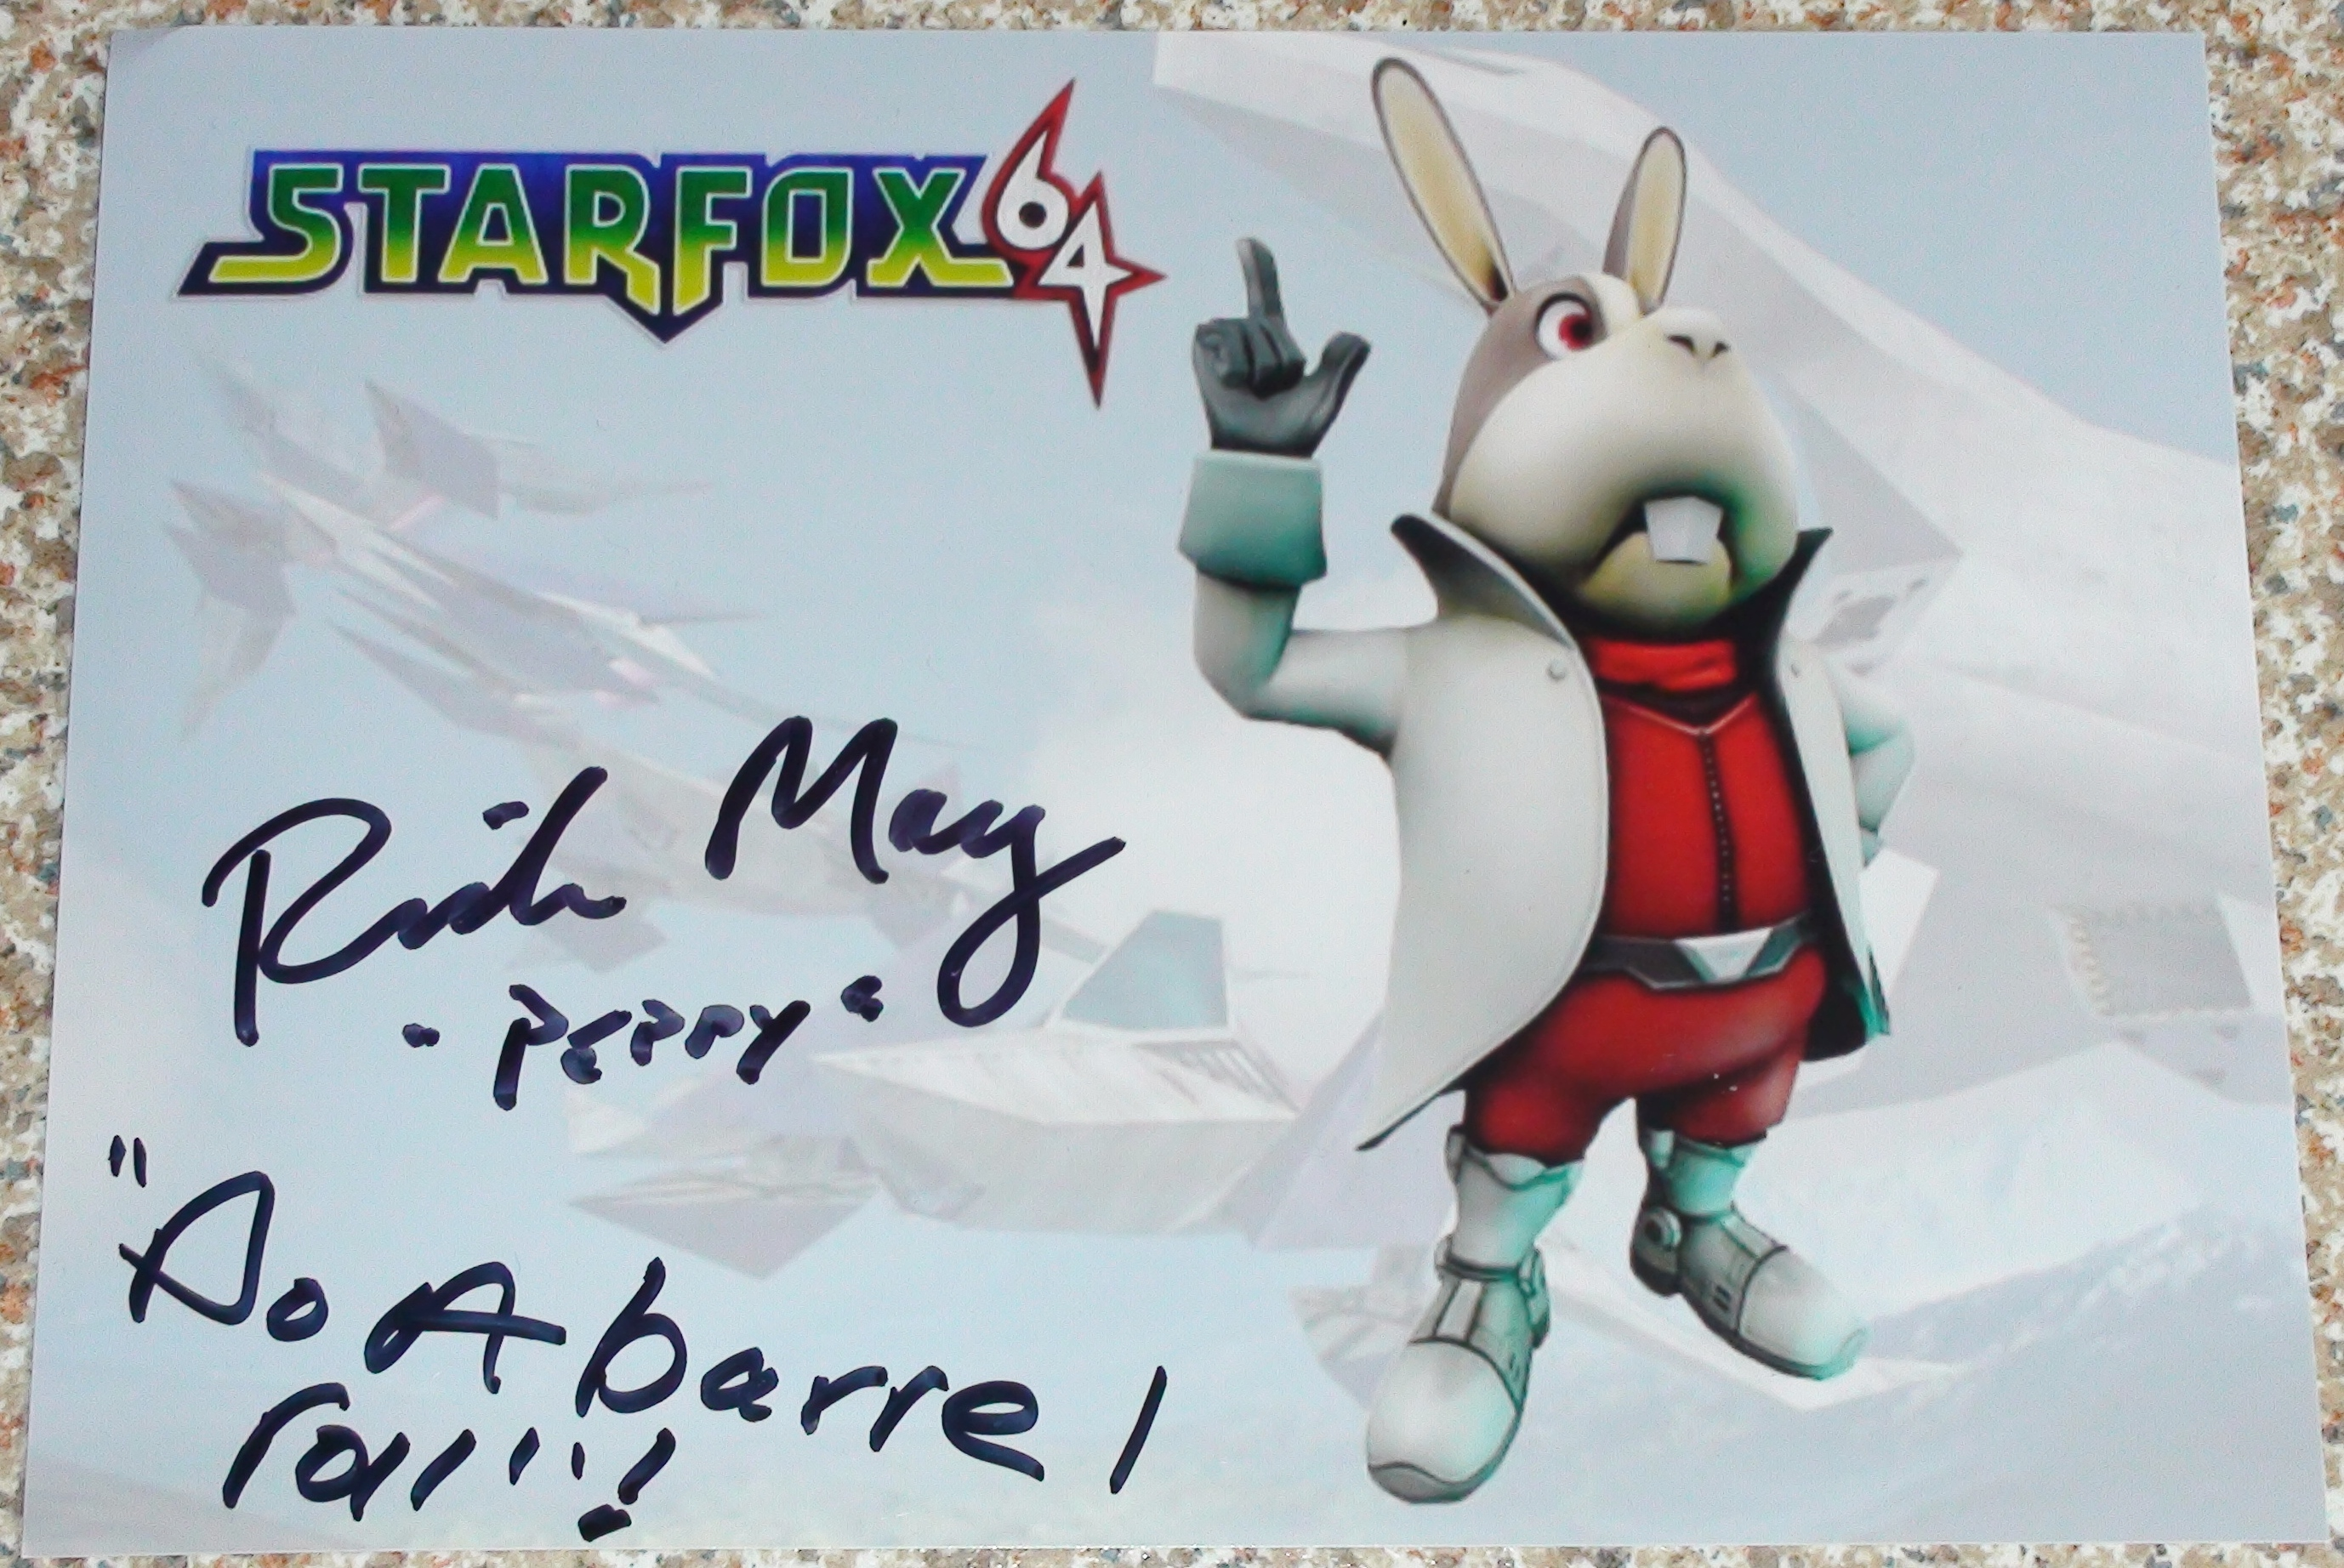 Star Fox 64 - Rick May